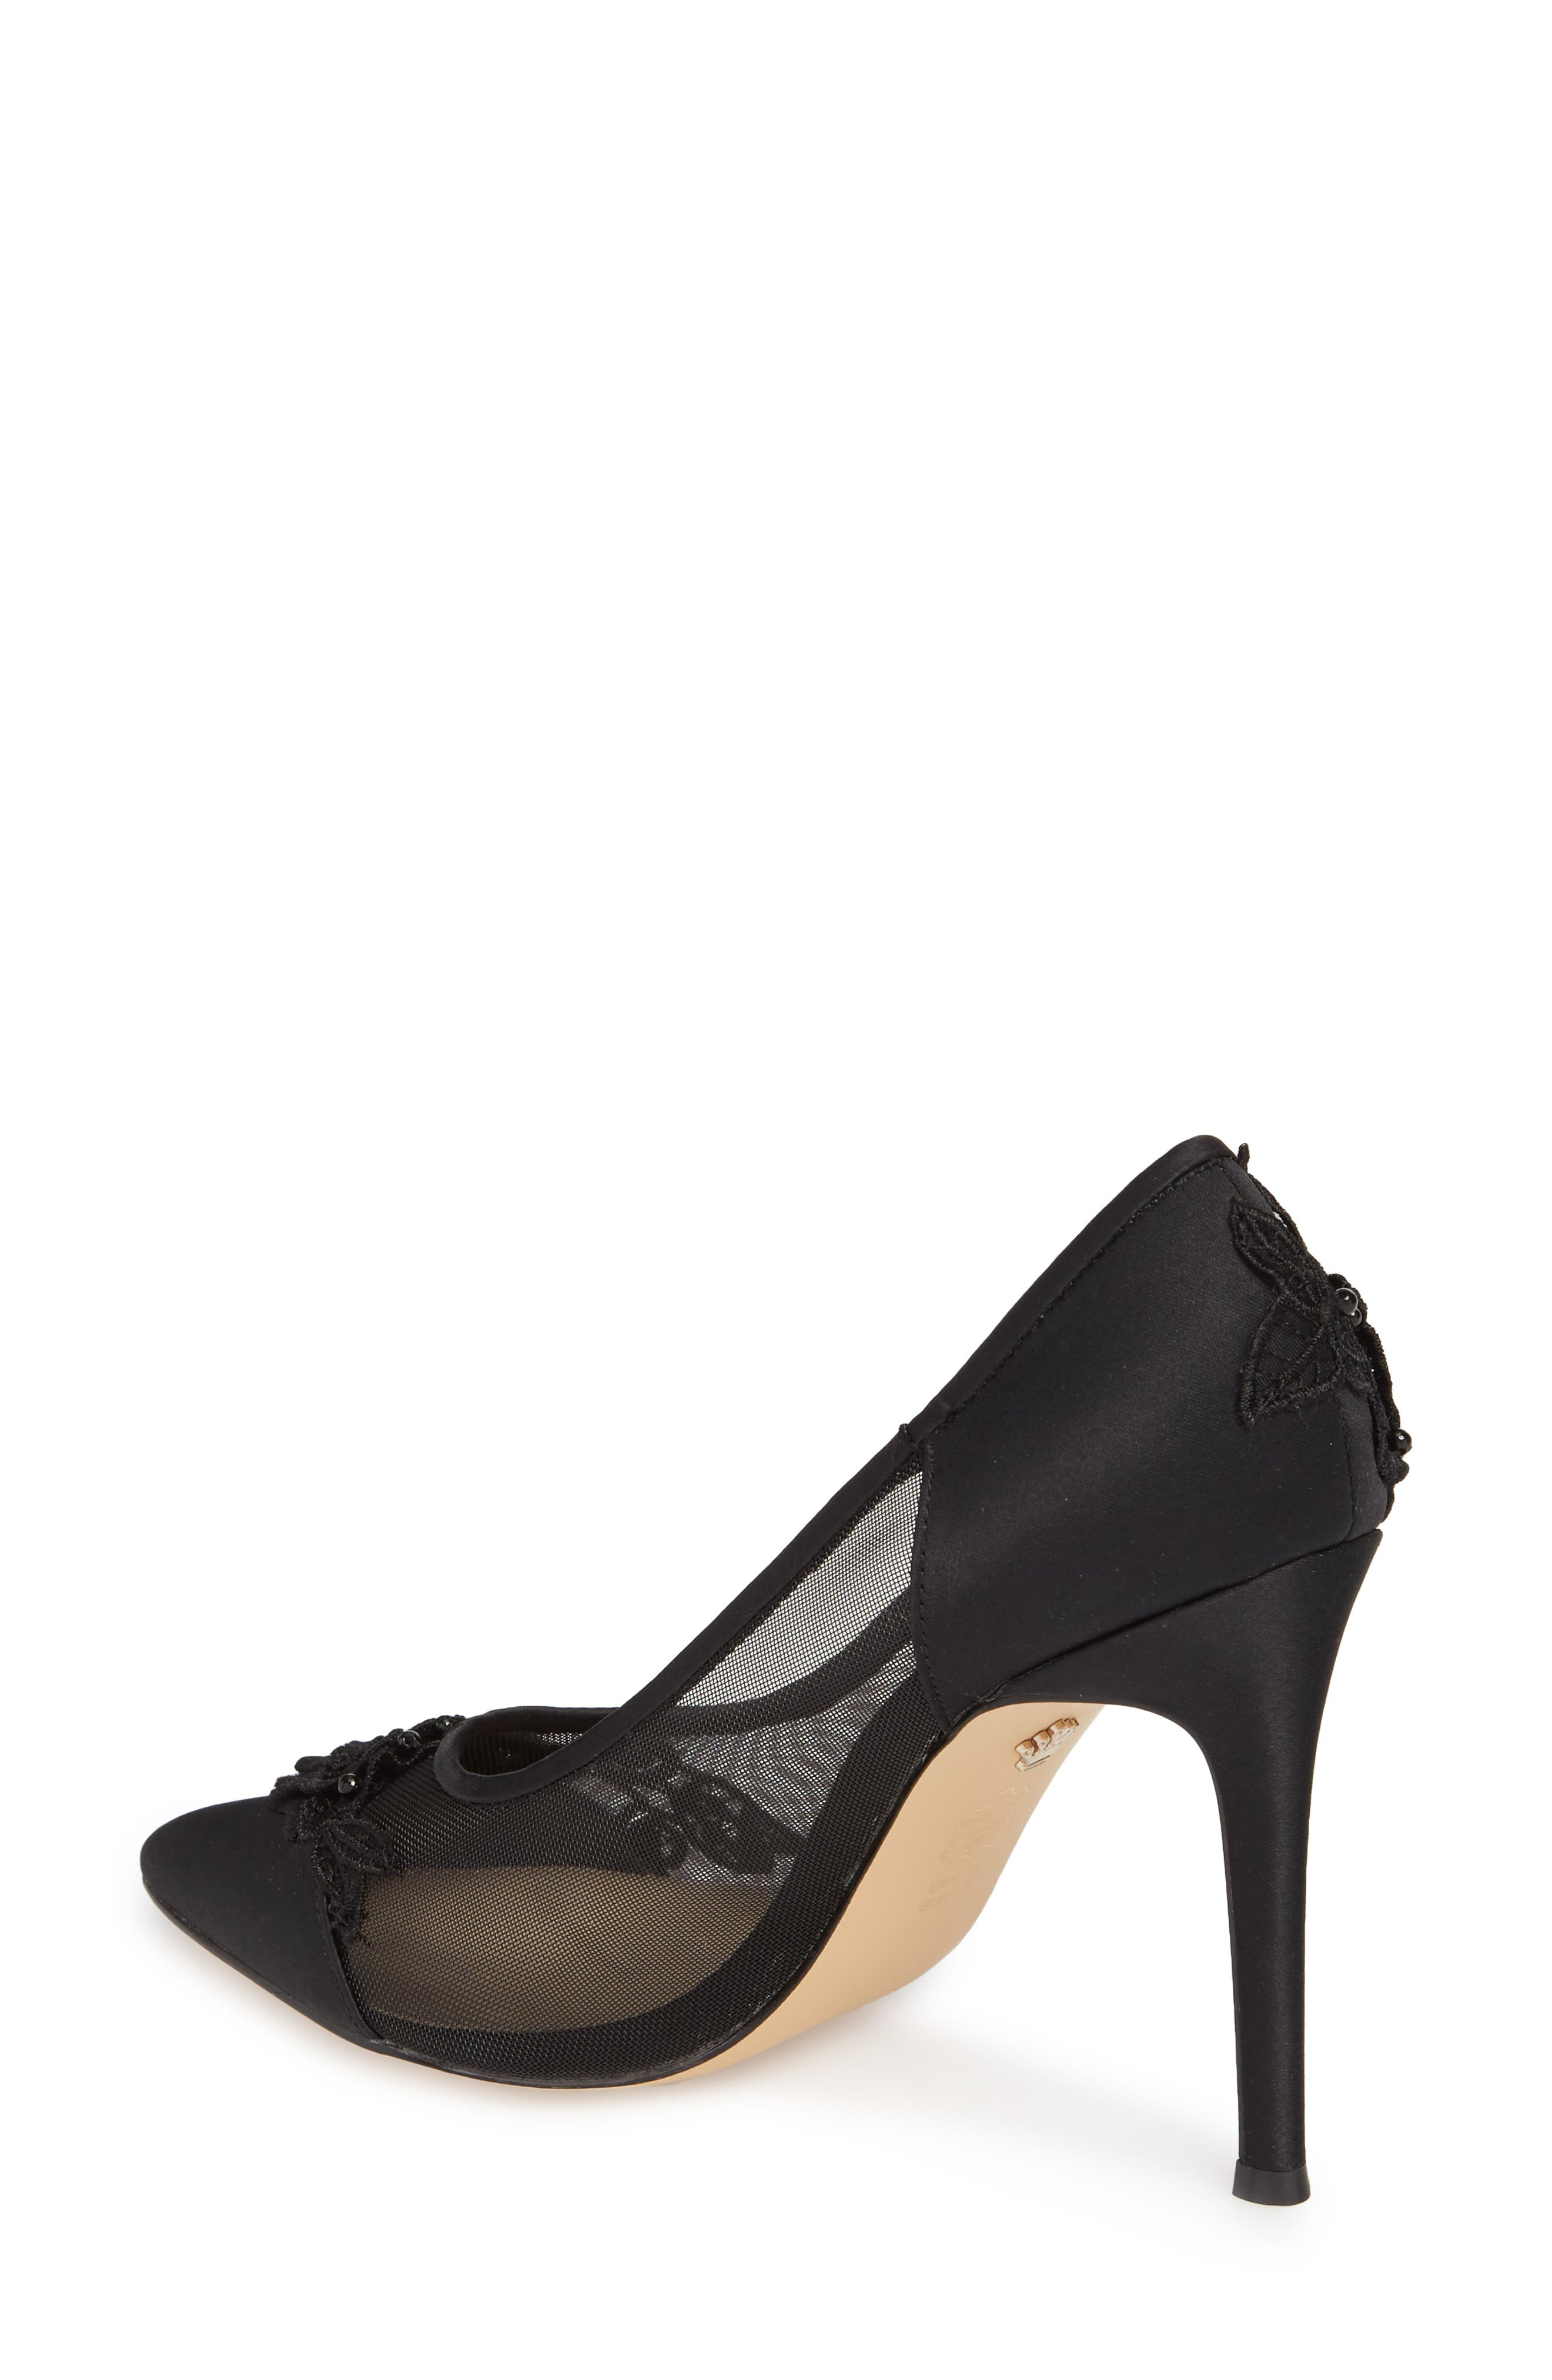 Donela Pump,                             Alternate thumbnail 2, color,                             Black Satin